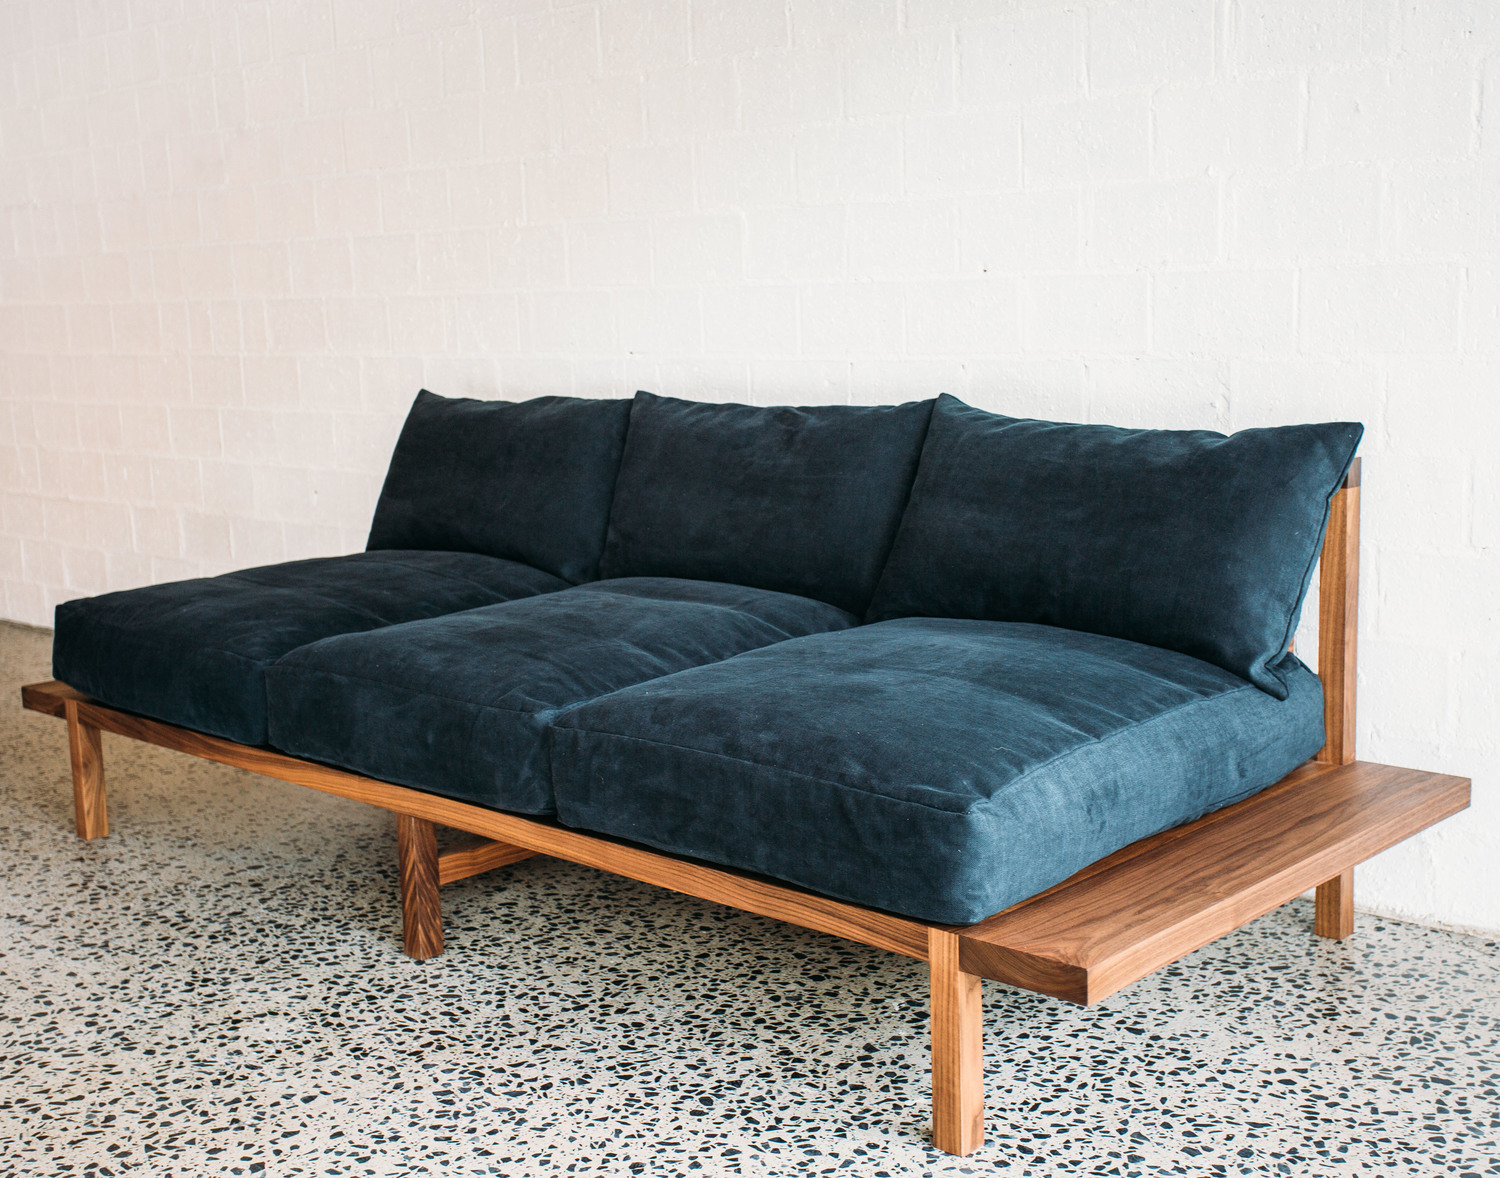 The Finley Sofa - JD.Lee Furniture - American Walnut Base and Italian linen upholstery